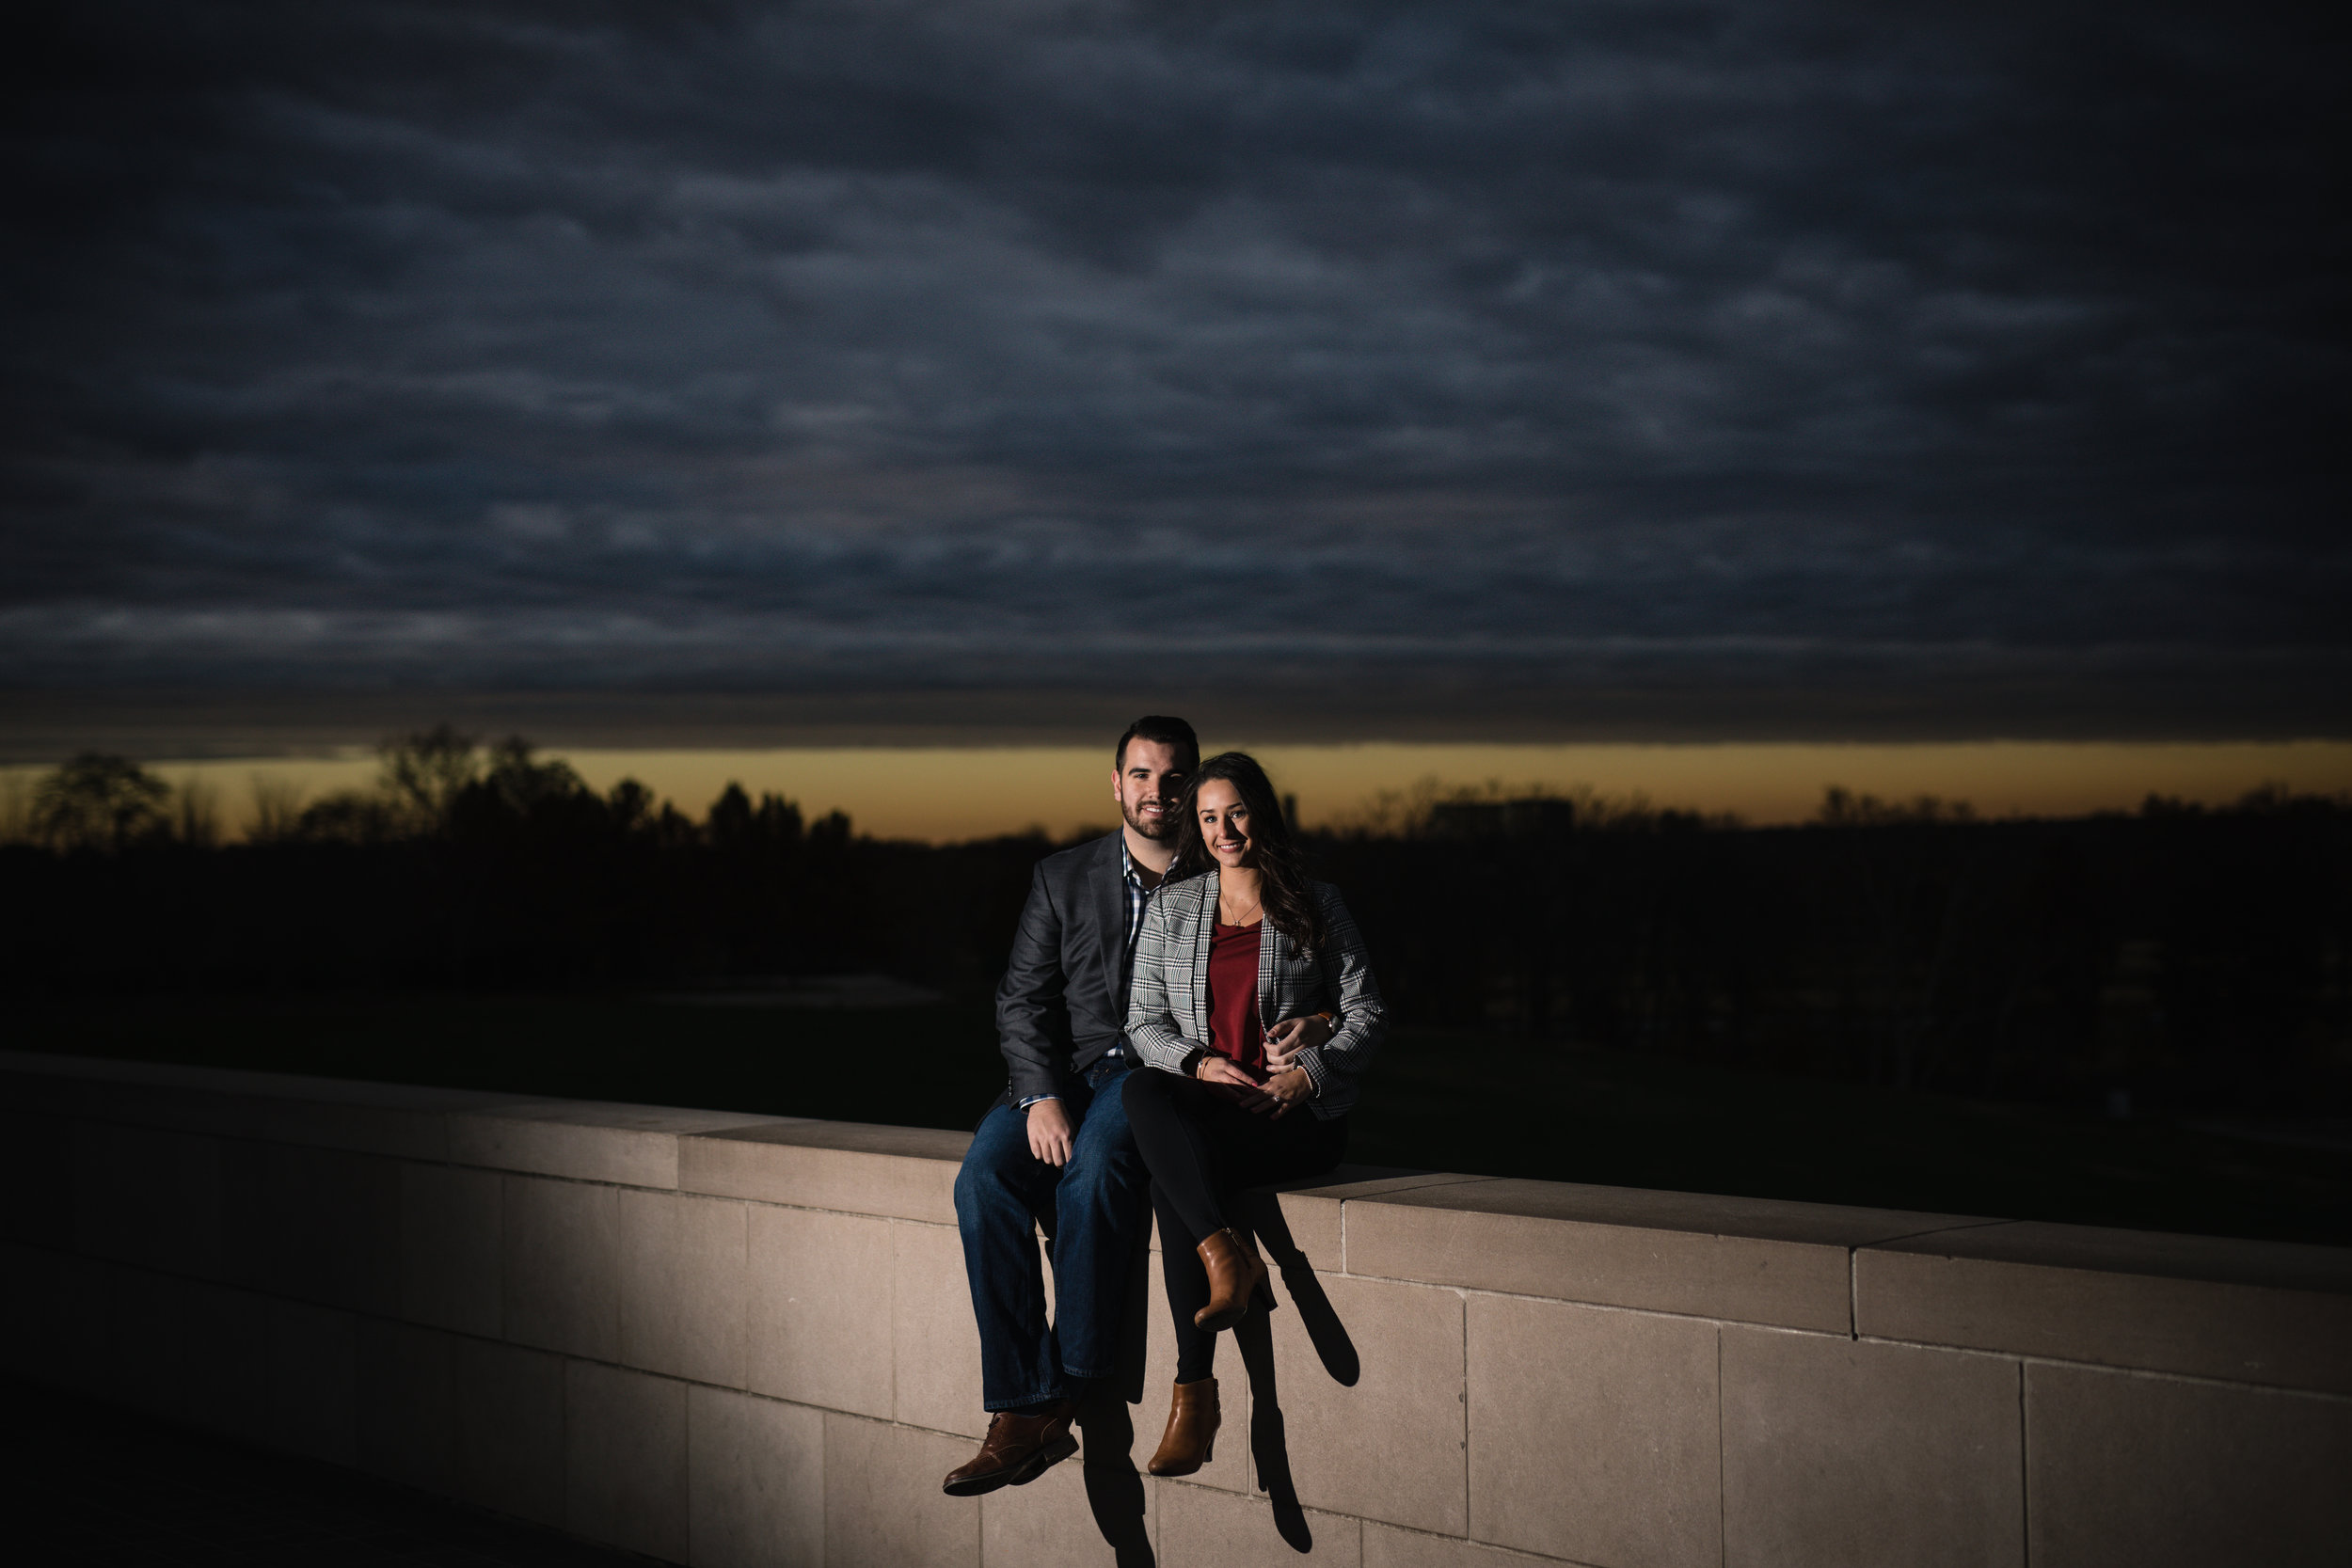 Waltrip Lemasters engagement portraits stl forest park-lewis and oak (5 of 8).jpg